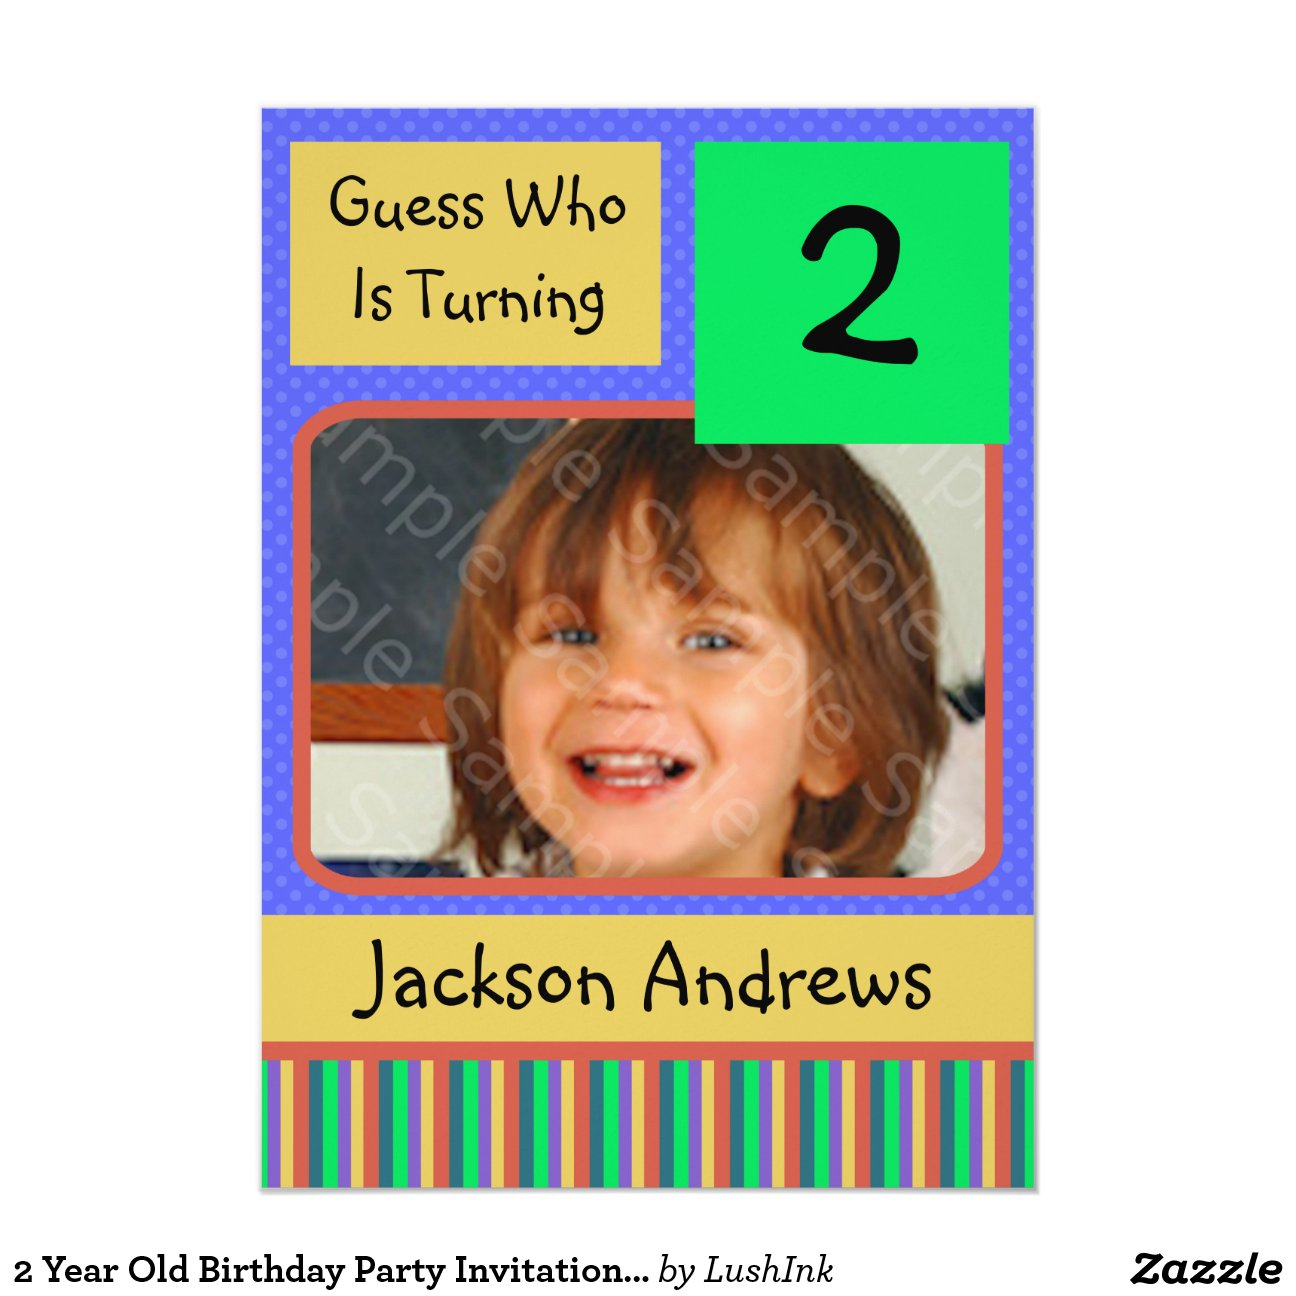 2 Year Birthday Party Invitations Boy R7c845133be274d67ae6bdeaecf18831d Zkrqs